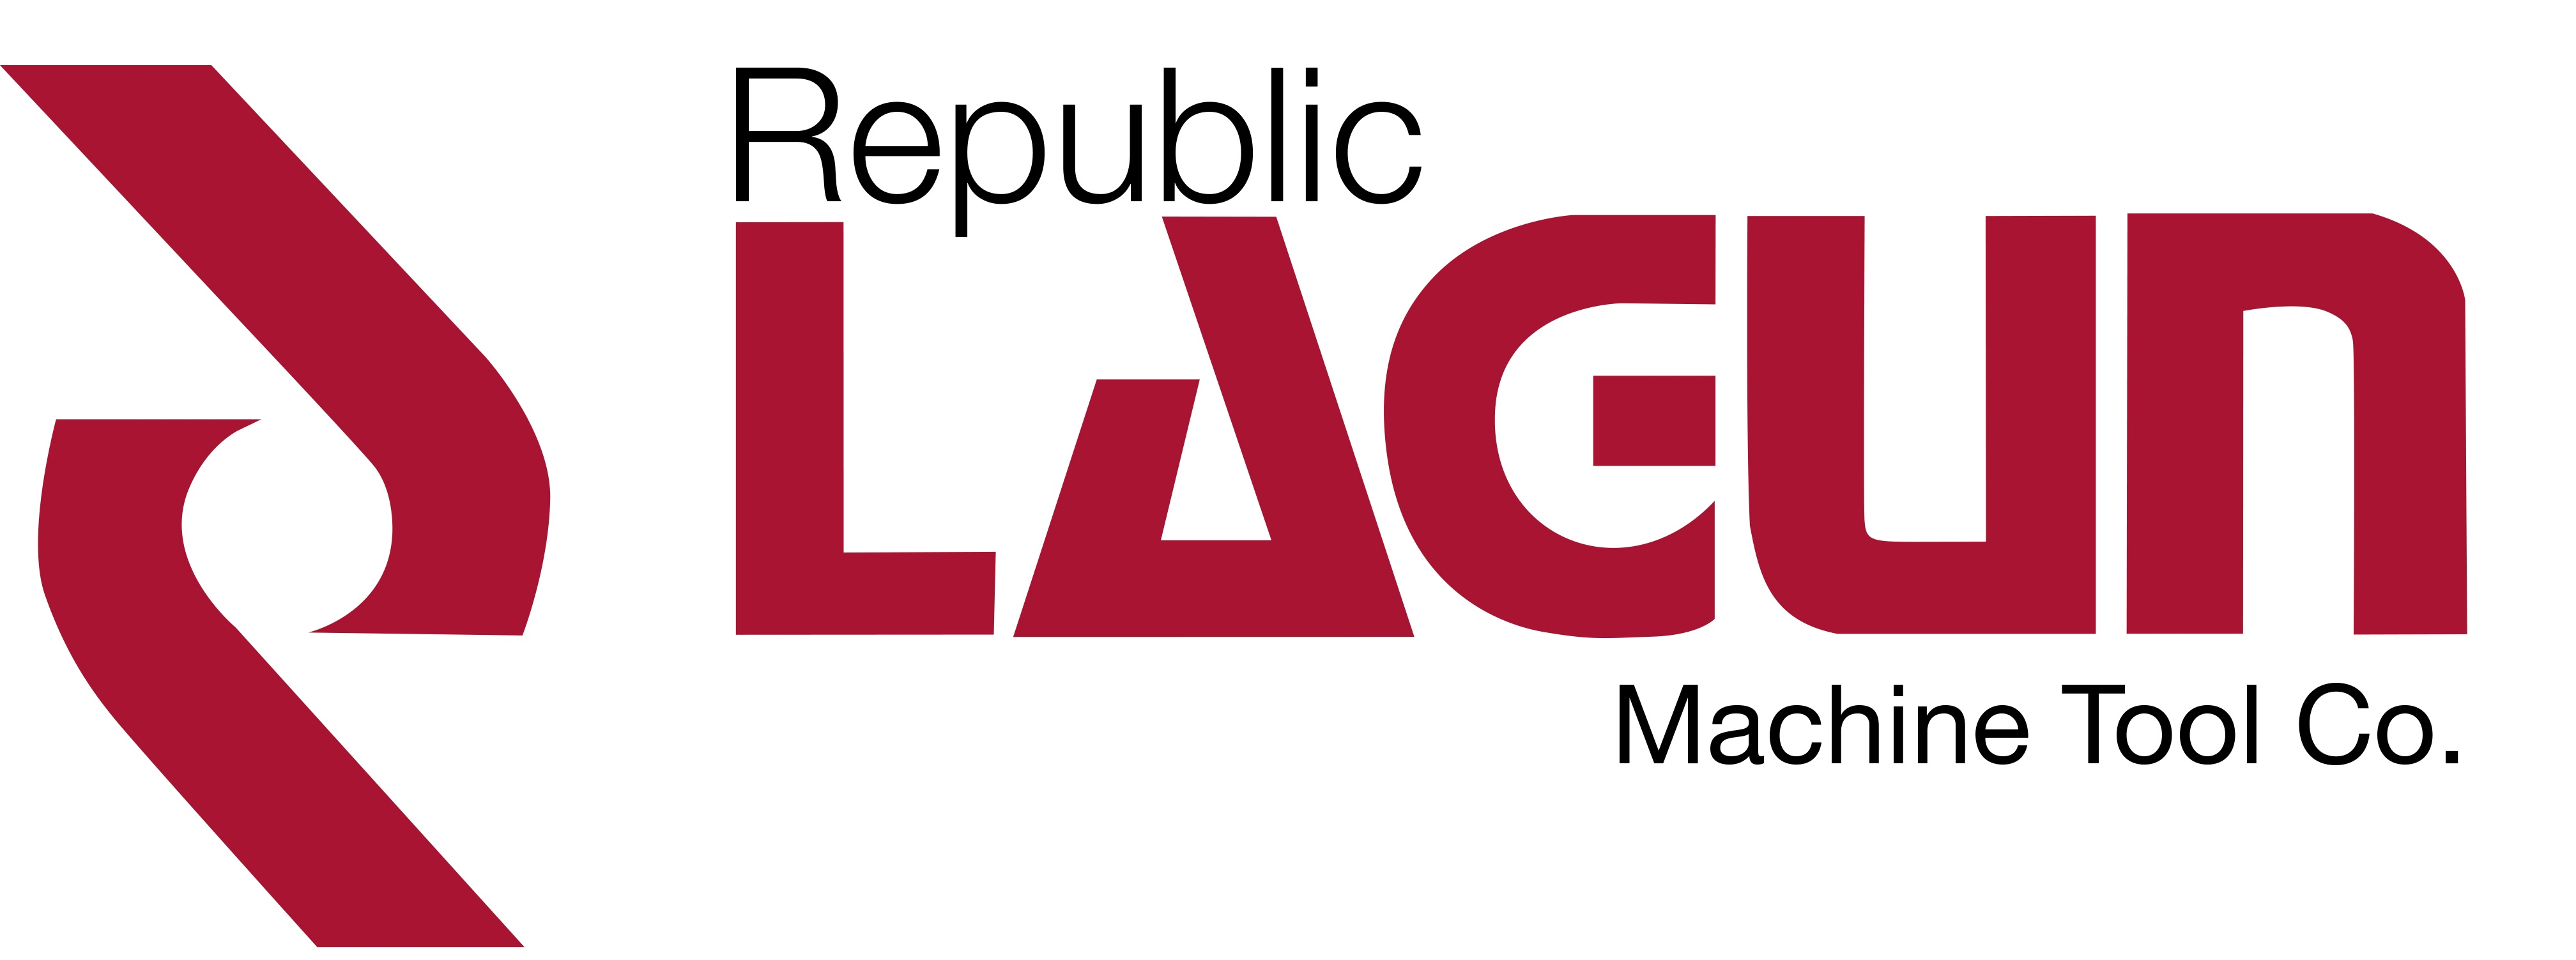 Made-in-California-manufacturer-Republic-Lagun-logo.jpg